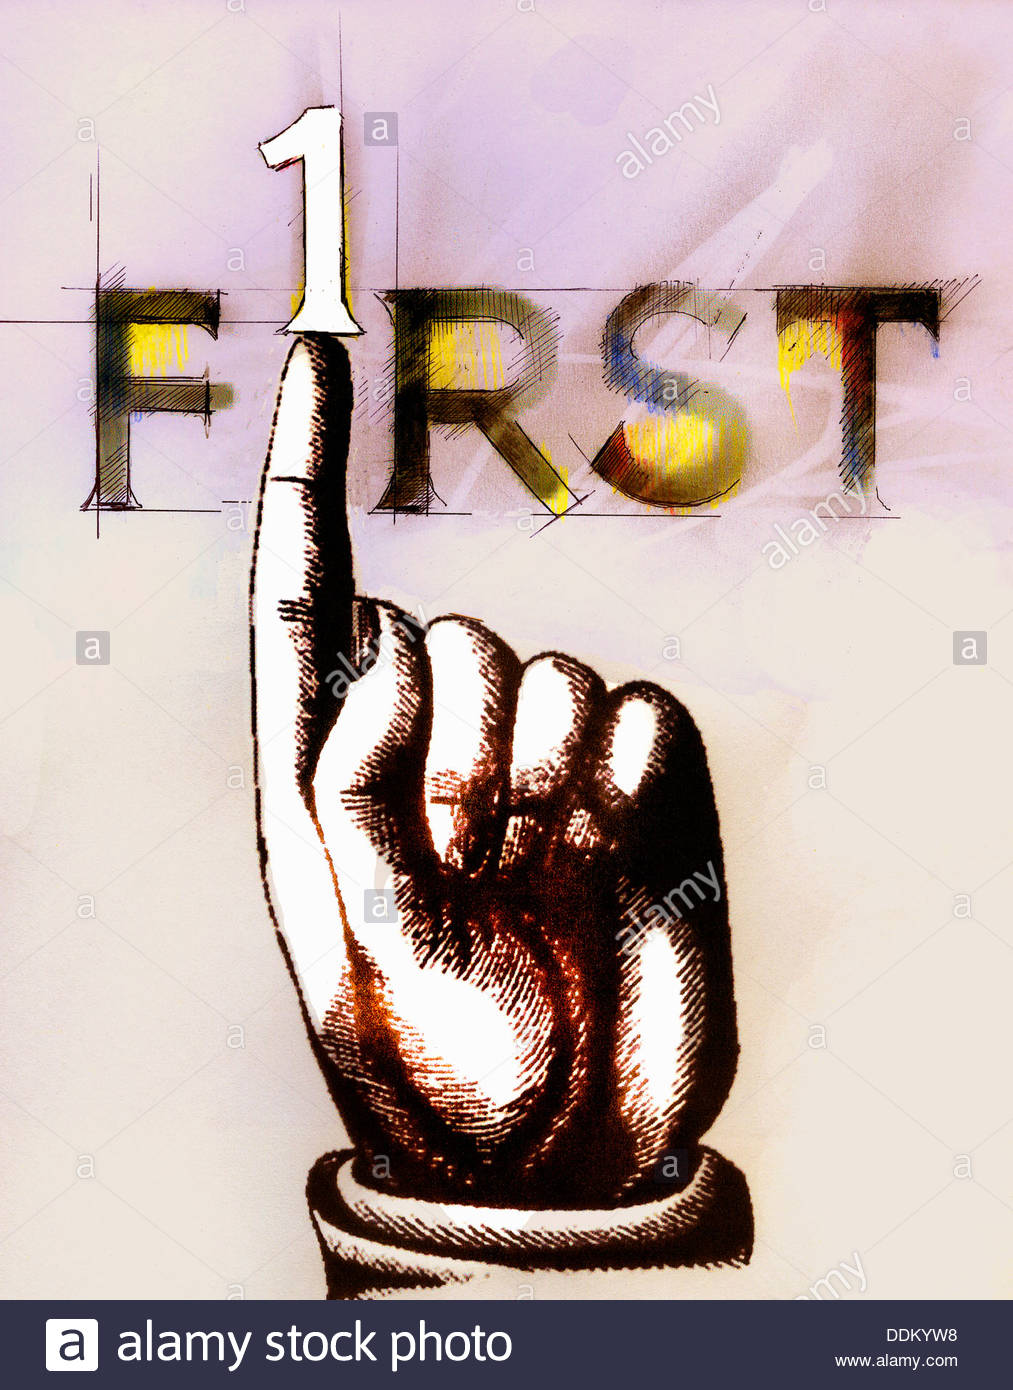 Finger pushing number 1 from 'First' text - Stock Image